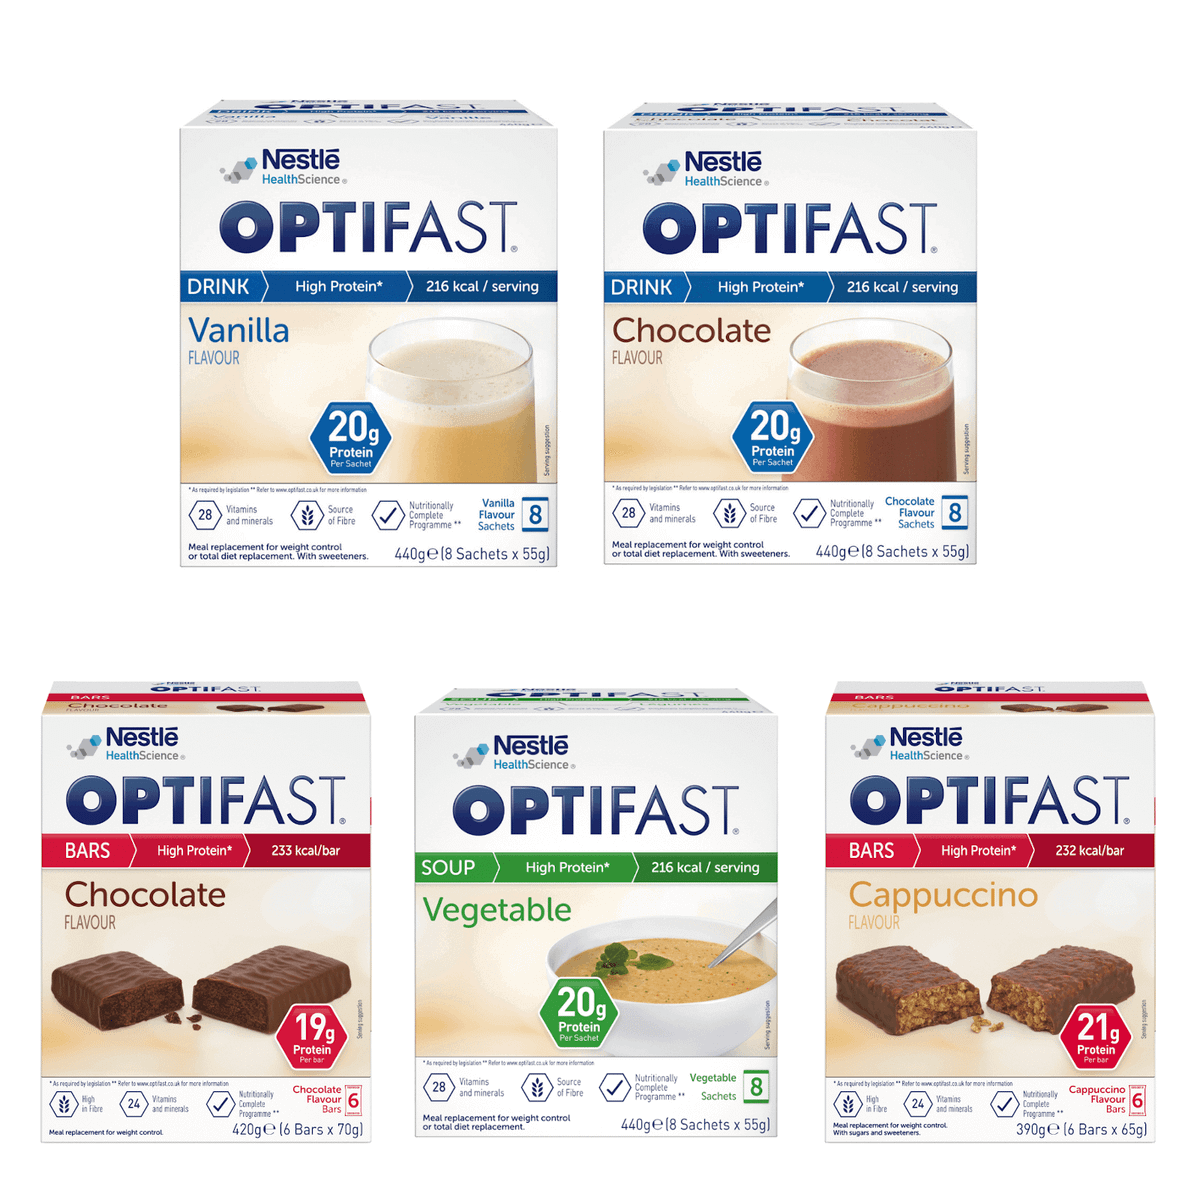 OPTIFAST vanilla and chocolate flavoured shakes, chocolate and cappuccino flavoured bars, and vegetable soup